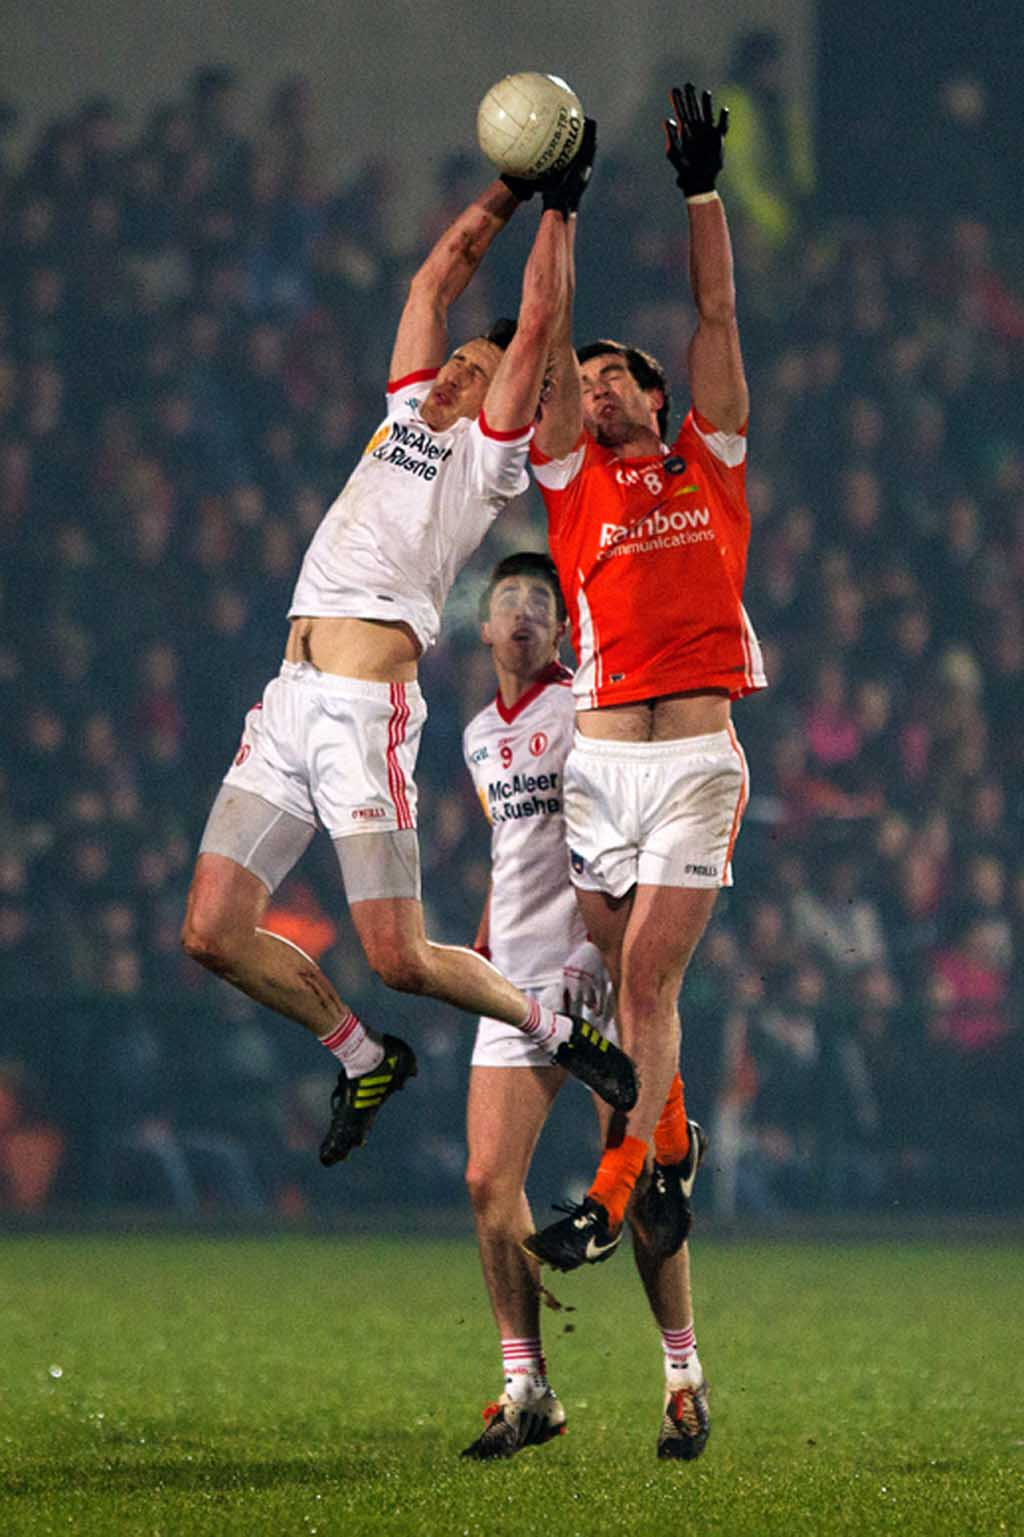 Tyrone advance to 6th consecutive McKenna Cup Final